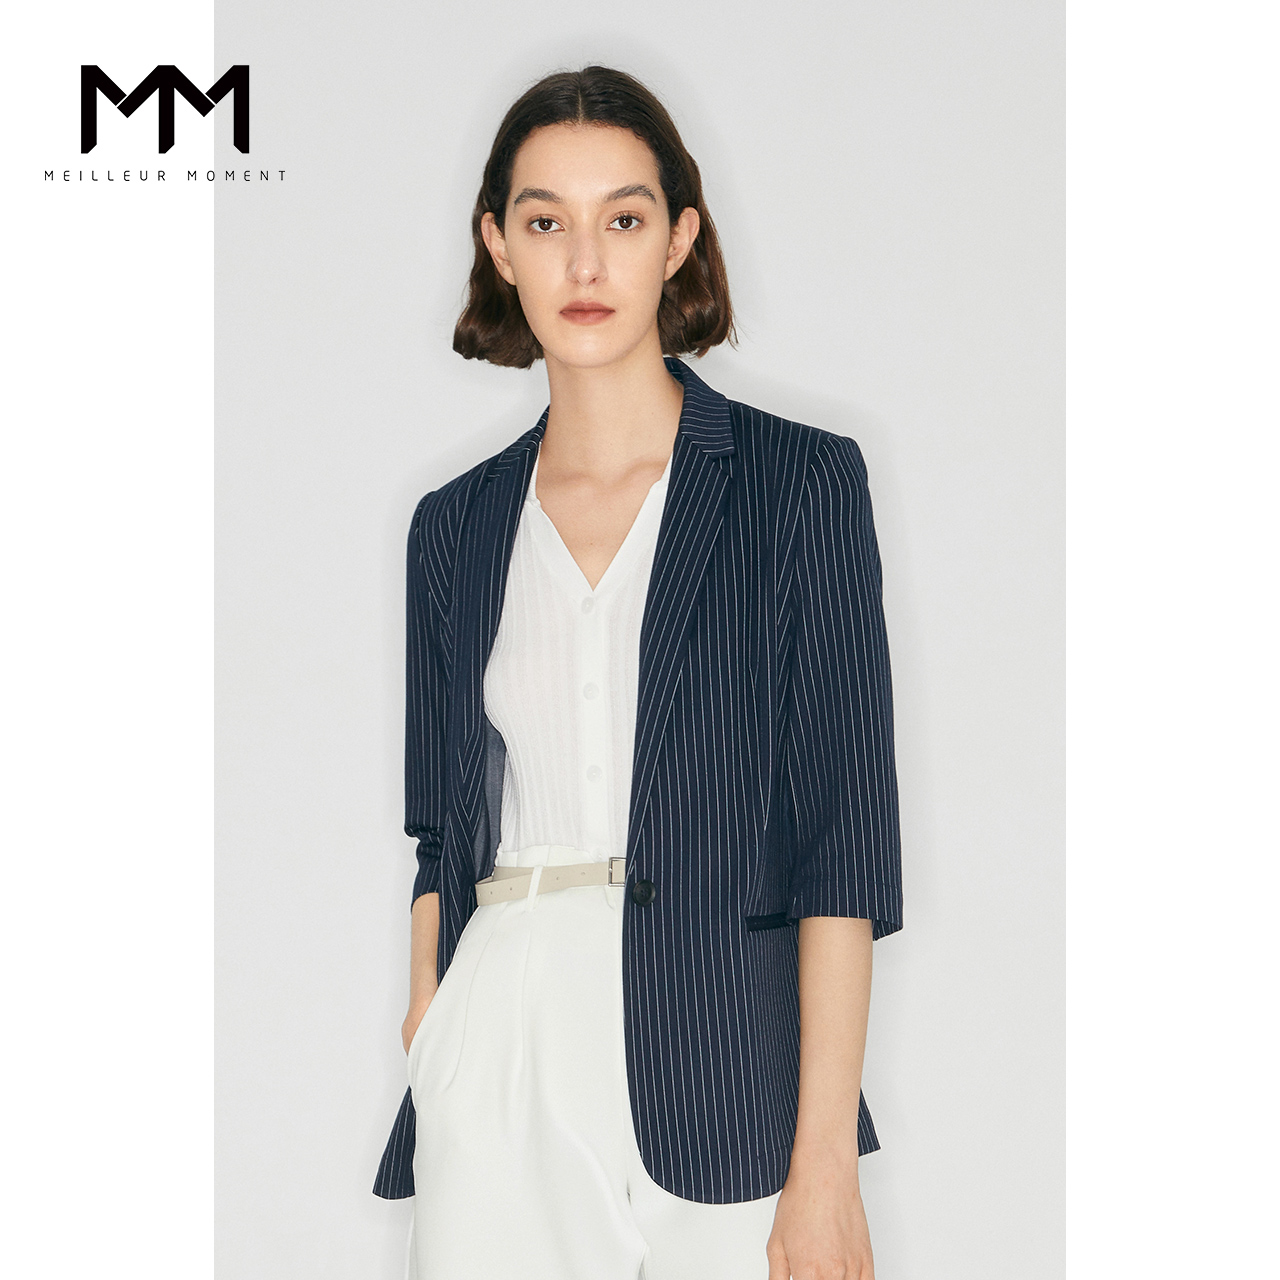 Mm Matsman Simple Denar Suit Luciting Striped Design Thin Sleeve Sleef Search Outside Group 5998112931